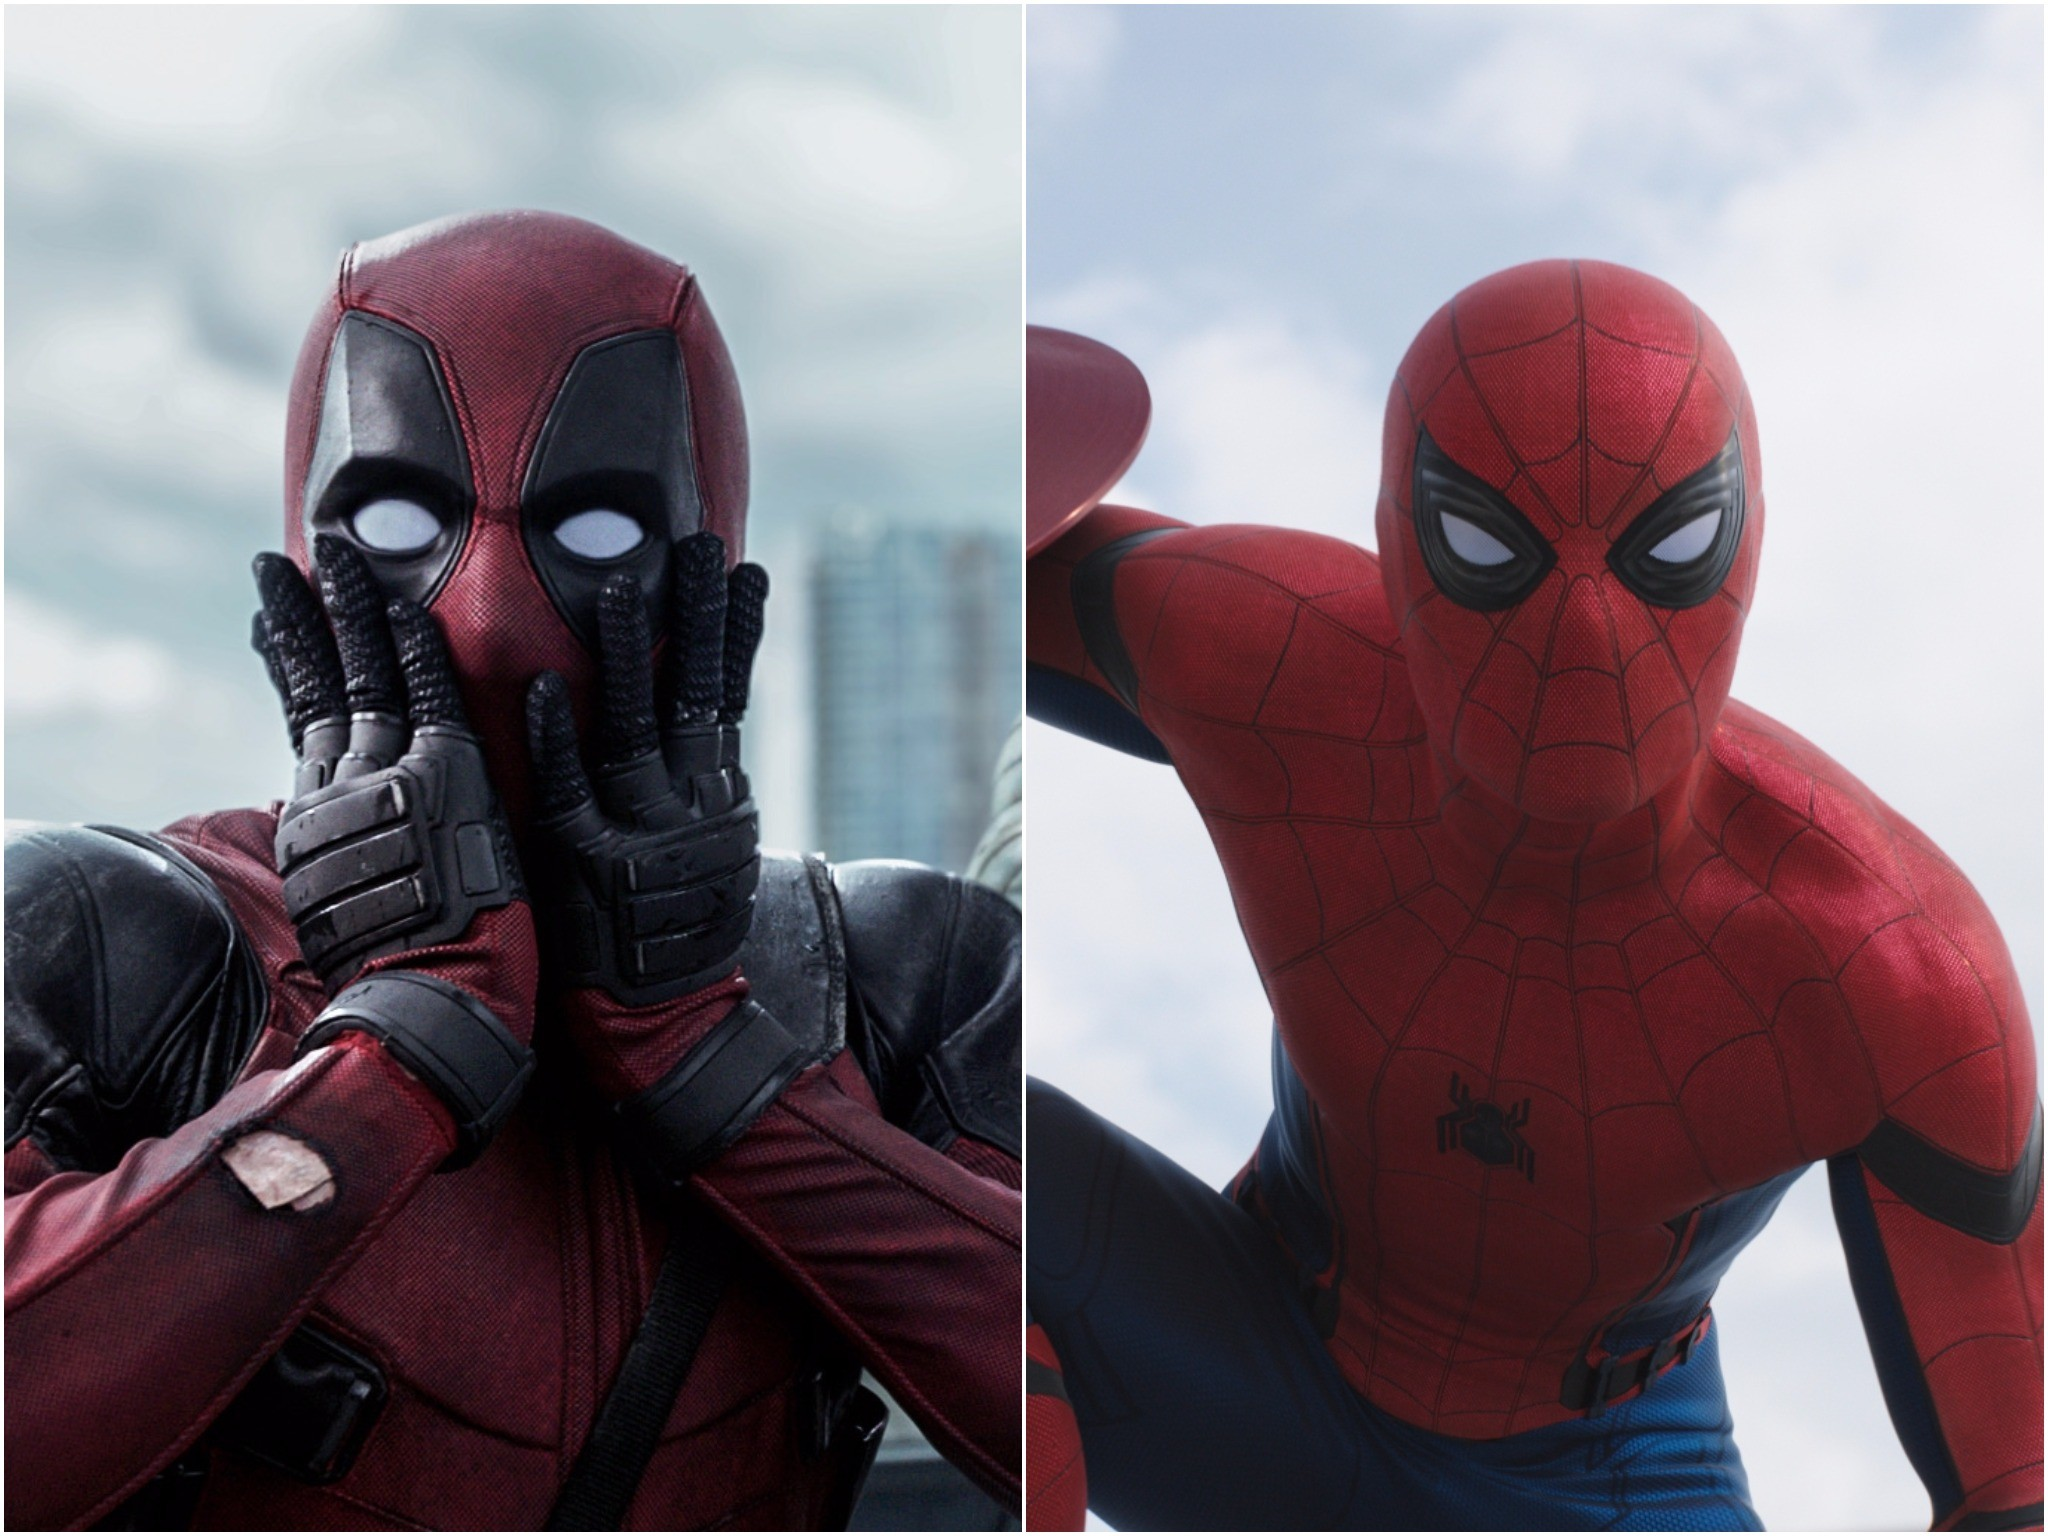 Deadpool/Spider-Man crossover: Director Tim Miller pushing for Marvel  superheroes to meet on screen   The Independent